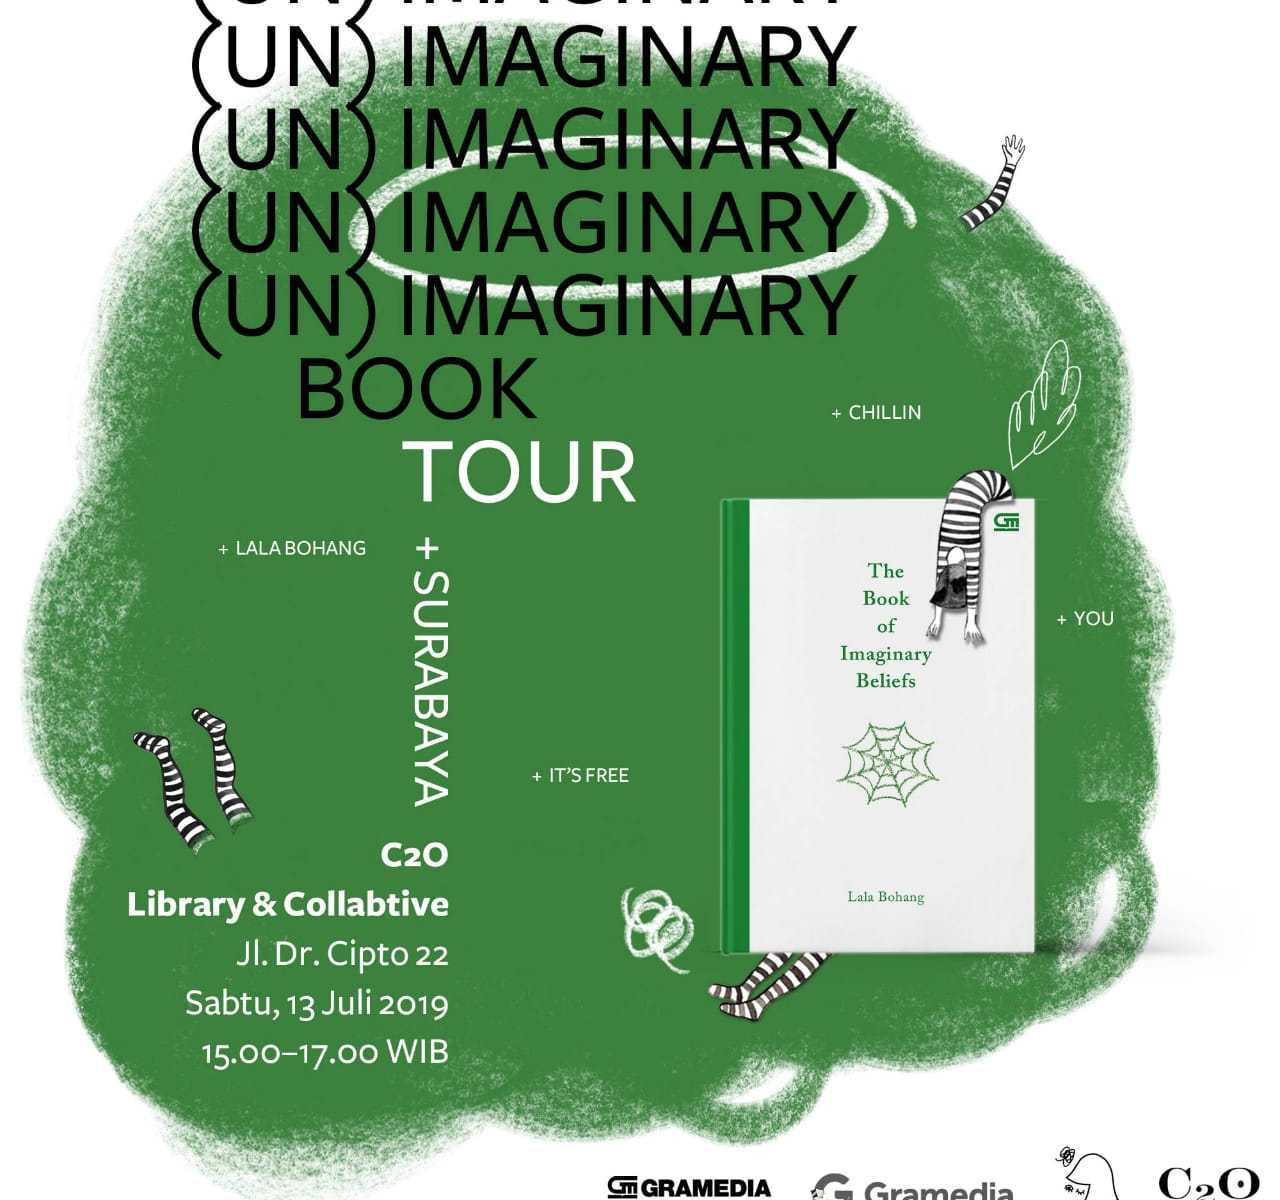 (Un)imaginary book tour di C2O, Surabaya